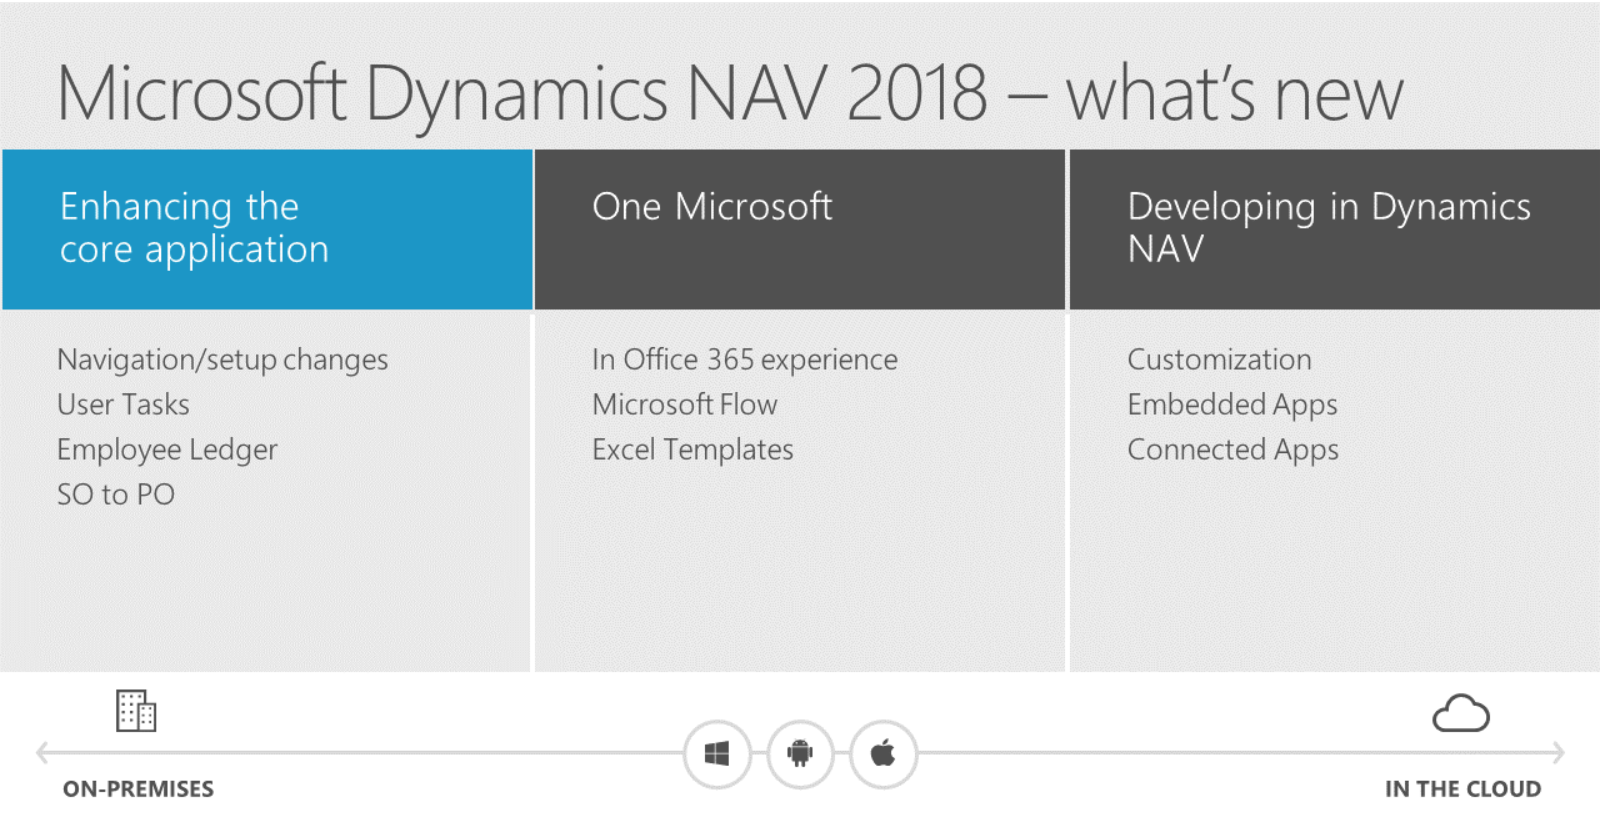 Tabla explicativa Microsoft Dynamics 2018